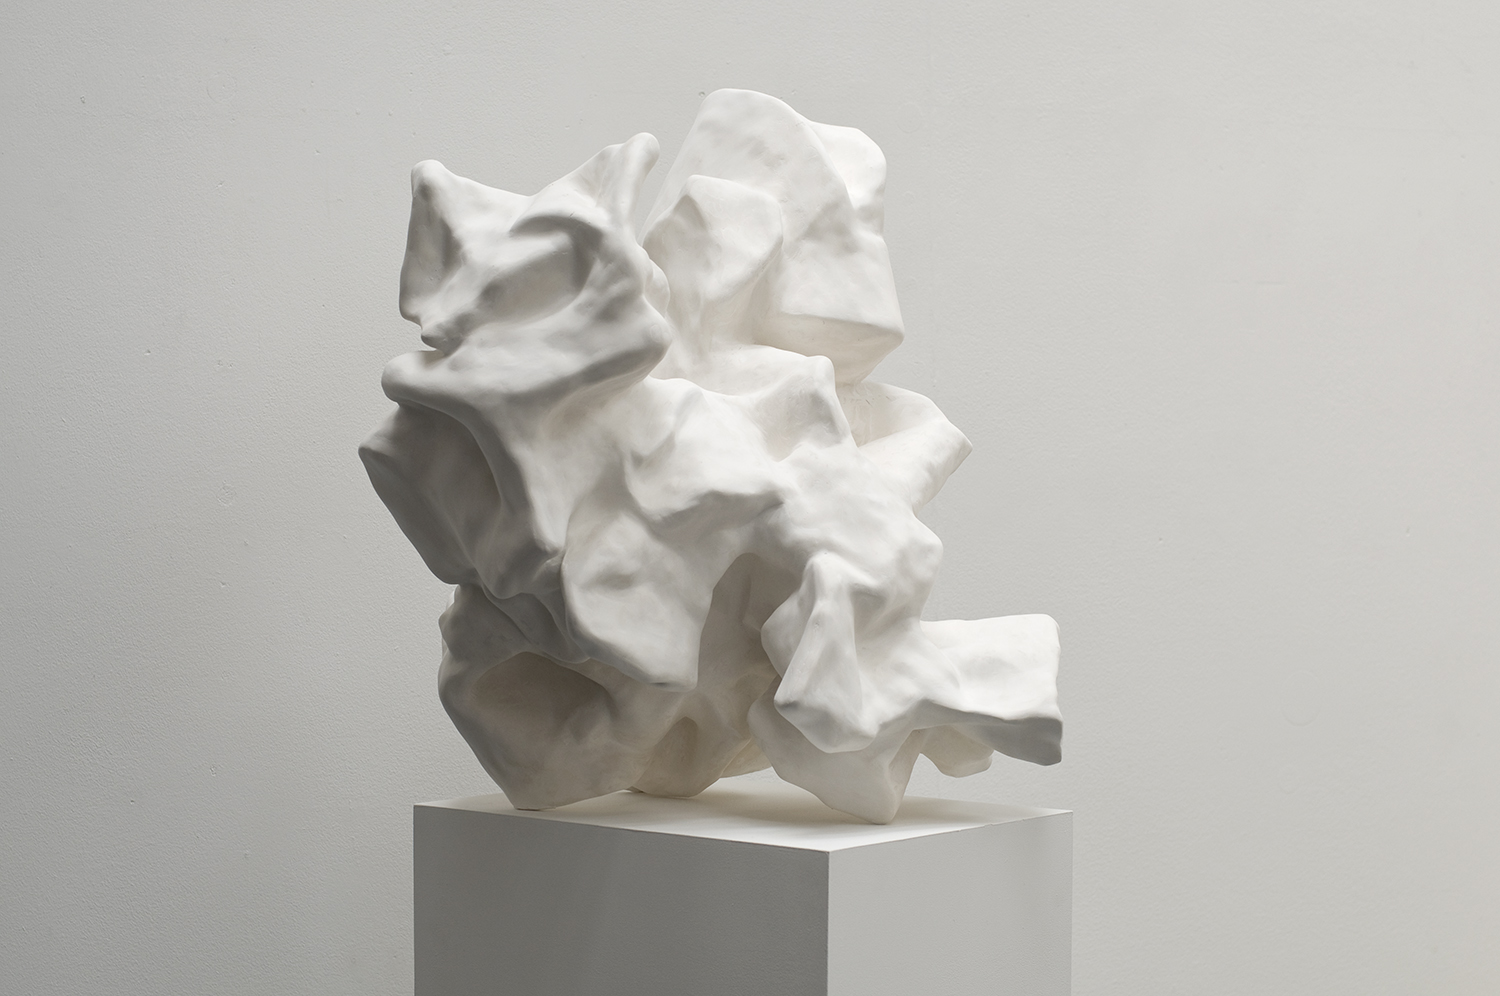 2011 'Tomb for 71 Volumes' Paper and Plaster 76 x 57 x 59 cm 1500px w highest qual prog.jpg